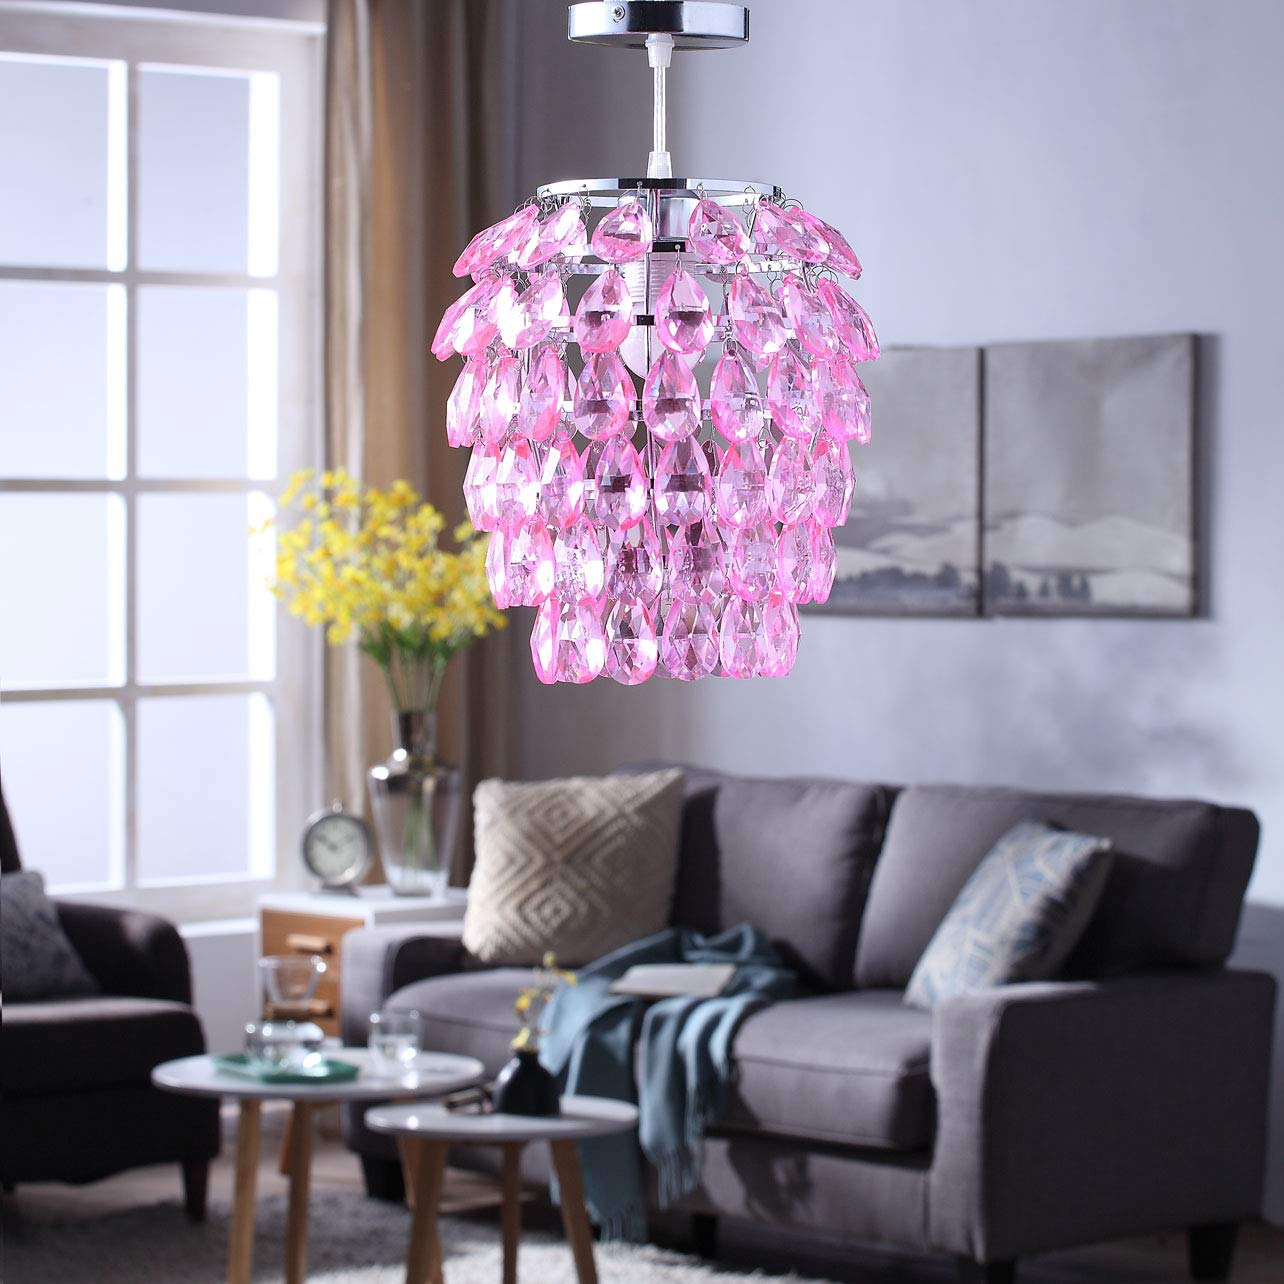 Topotdor Crystal Chandelier, Chrome Flush Mount Ceiling Light Fixture with Raindrop Crystals, Modern Ceiling Lighting for Hallway, Bedroom, Living Room, Kitchen Light Pink